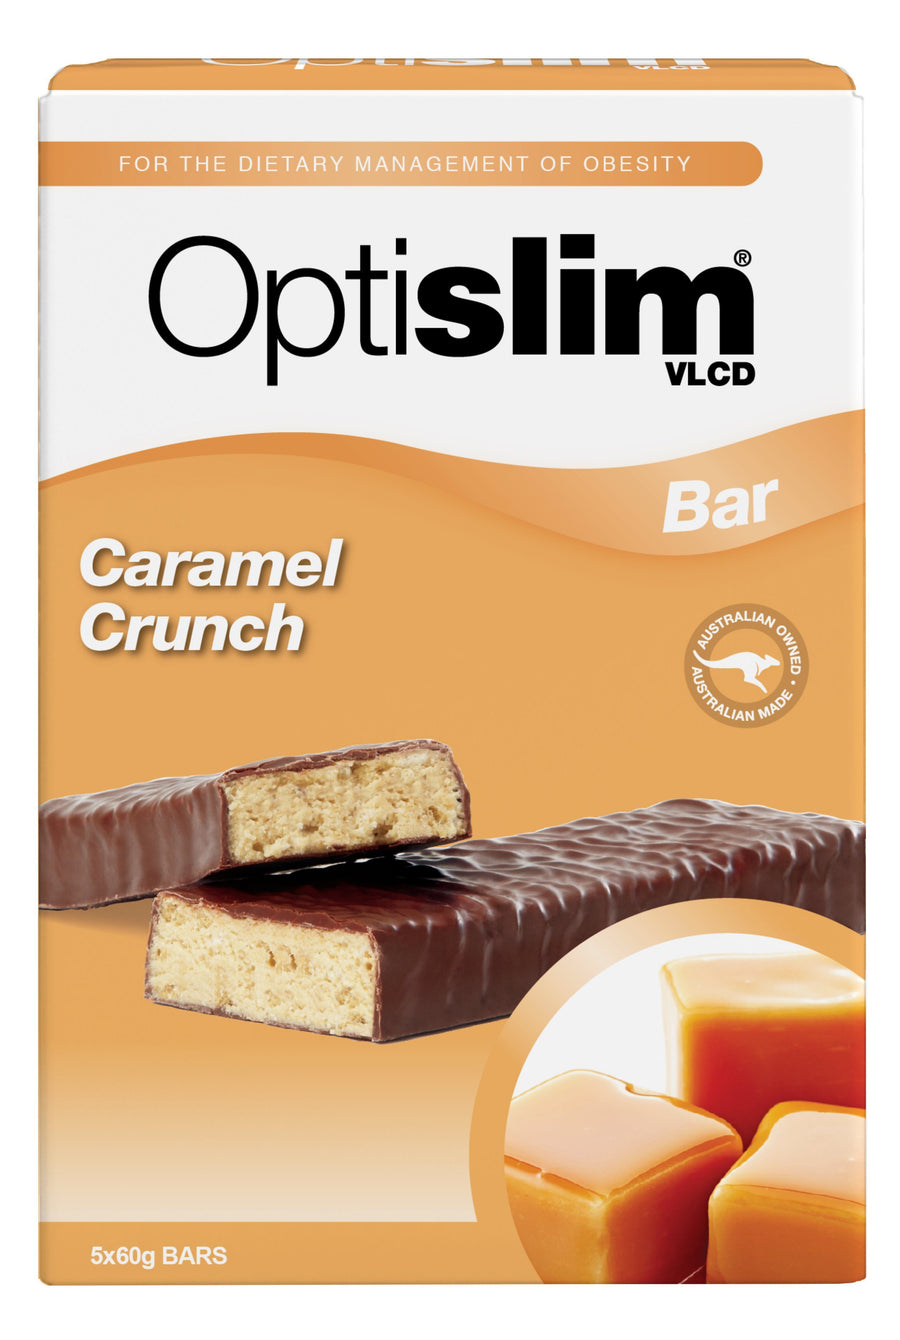 Optislim VLCD Bar Caramel Crunch (5x60g) Weight Loss OptiSlim